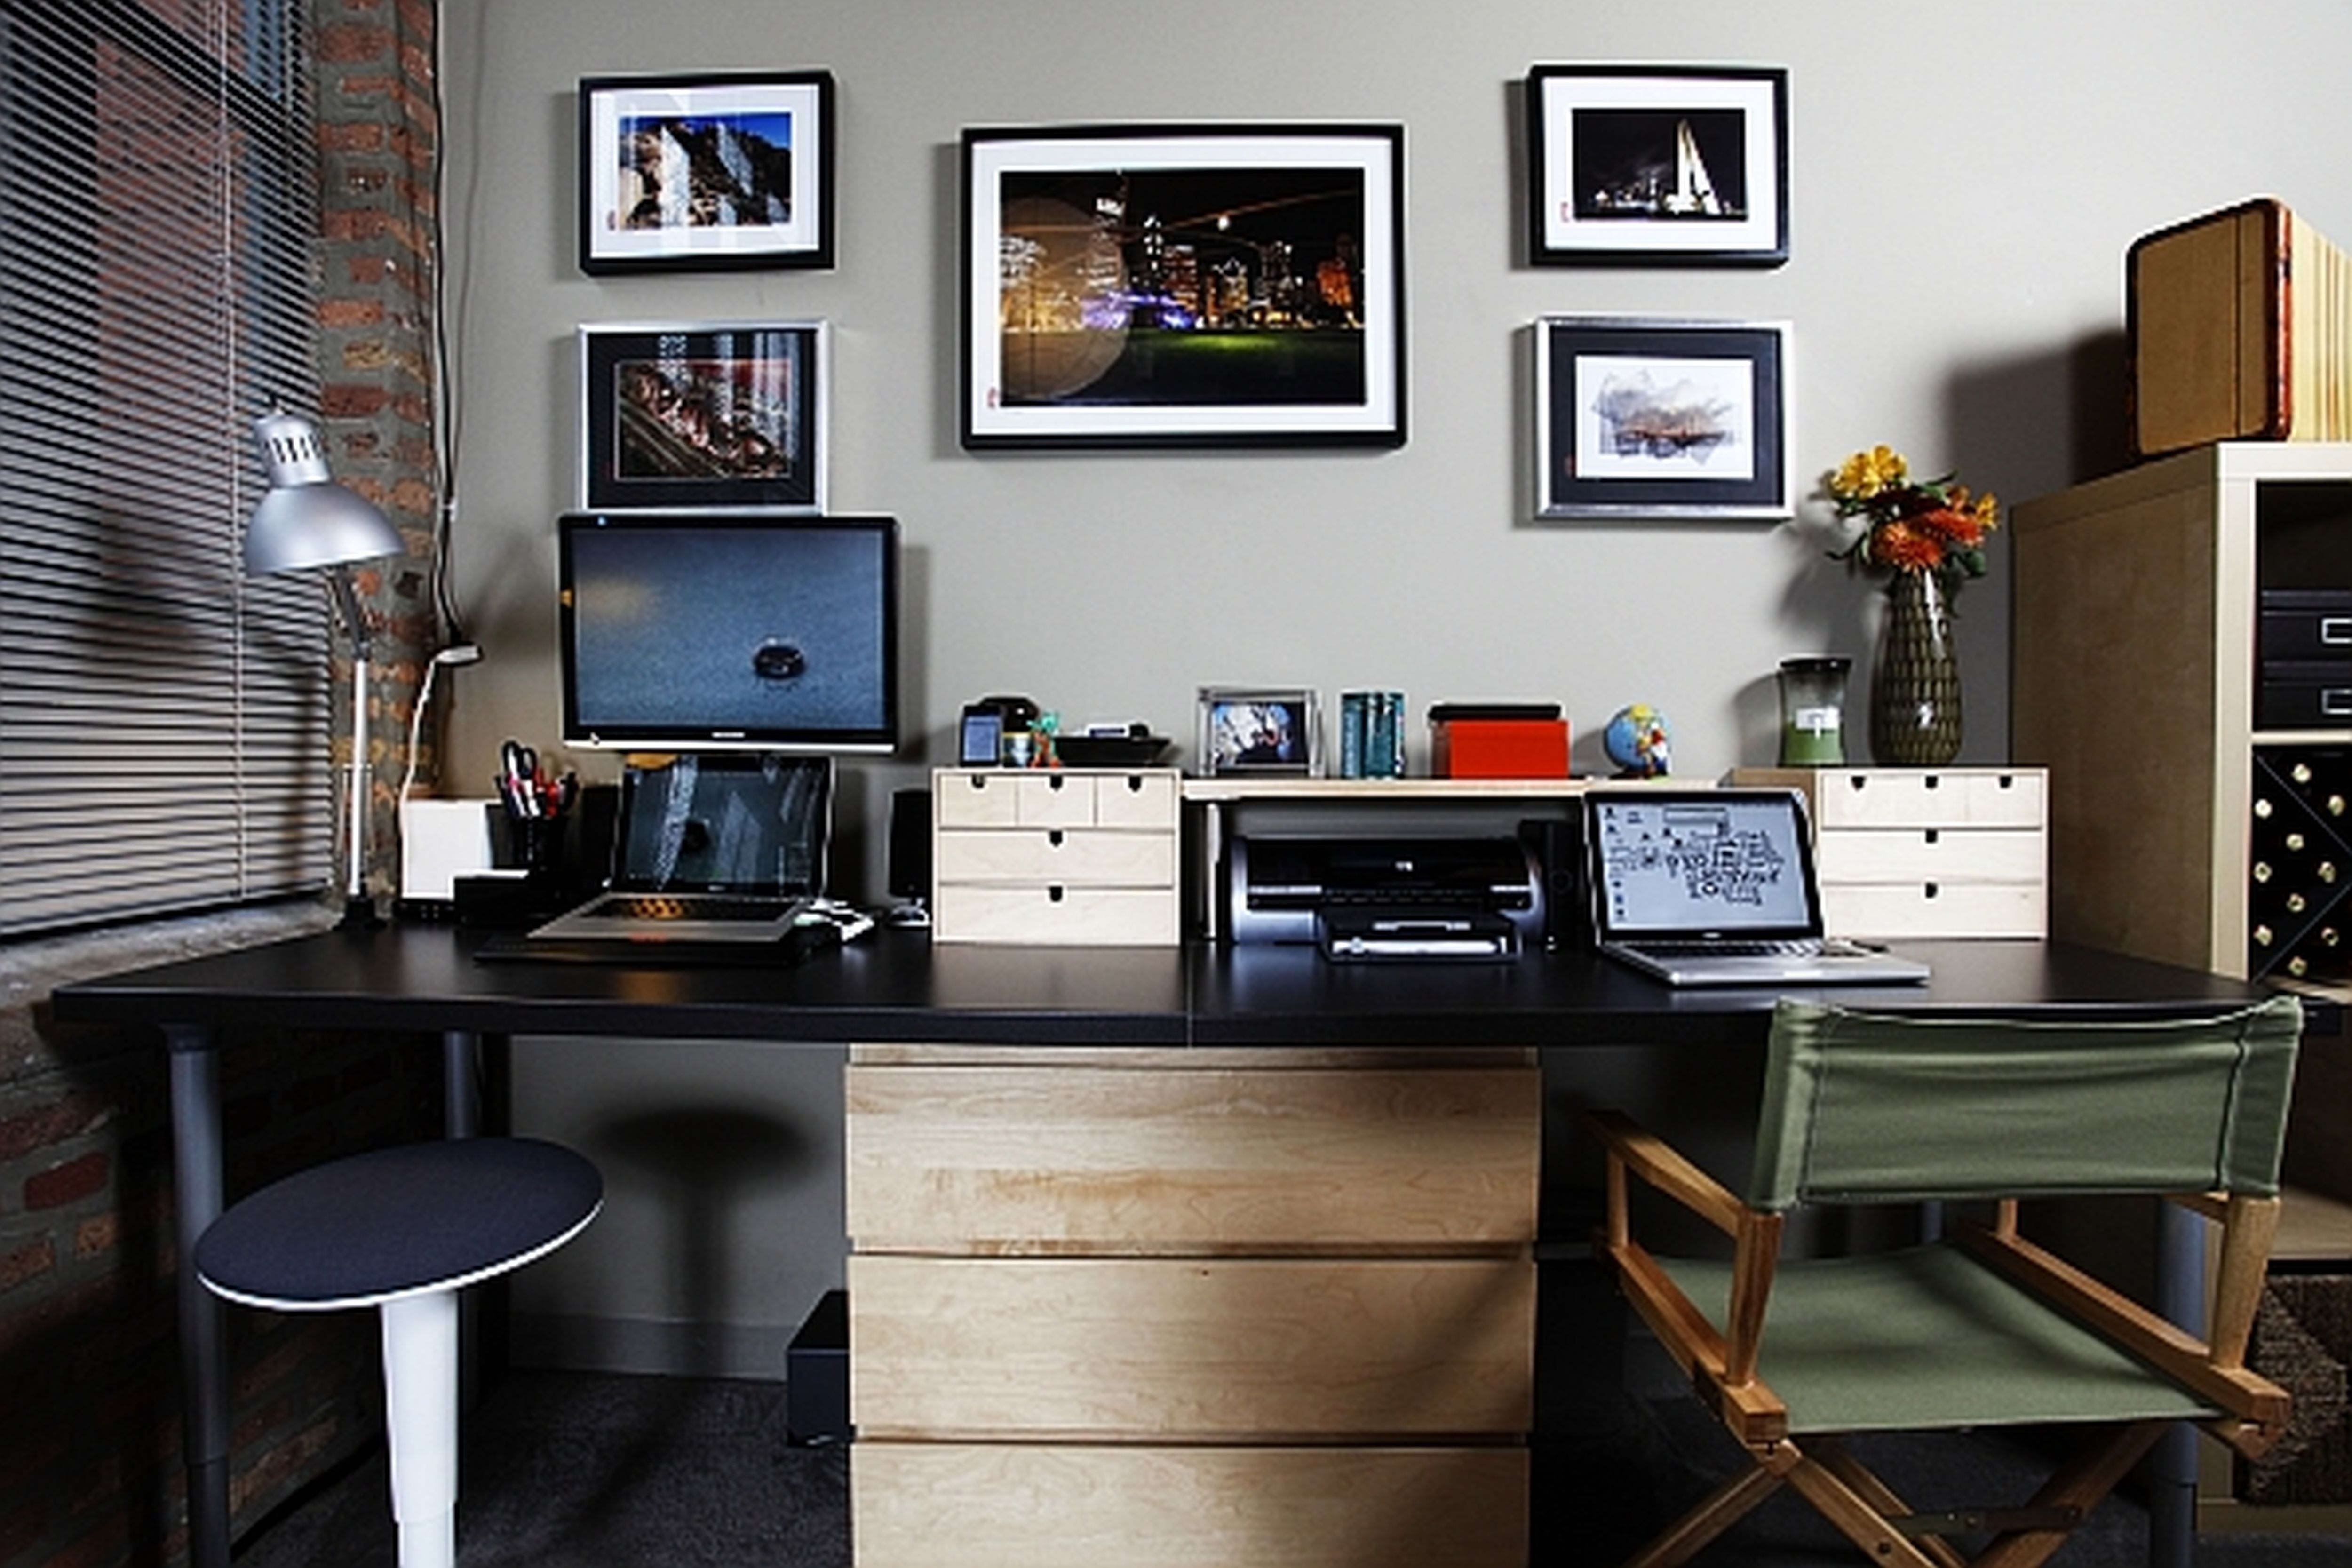 10 Most Popular Work From Home Ideas 2013 home office furniture chairs space decoration work from ideas 2020